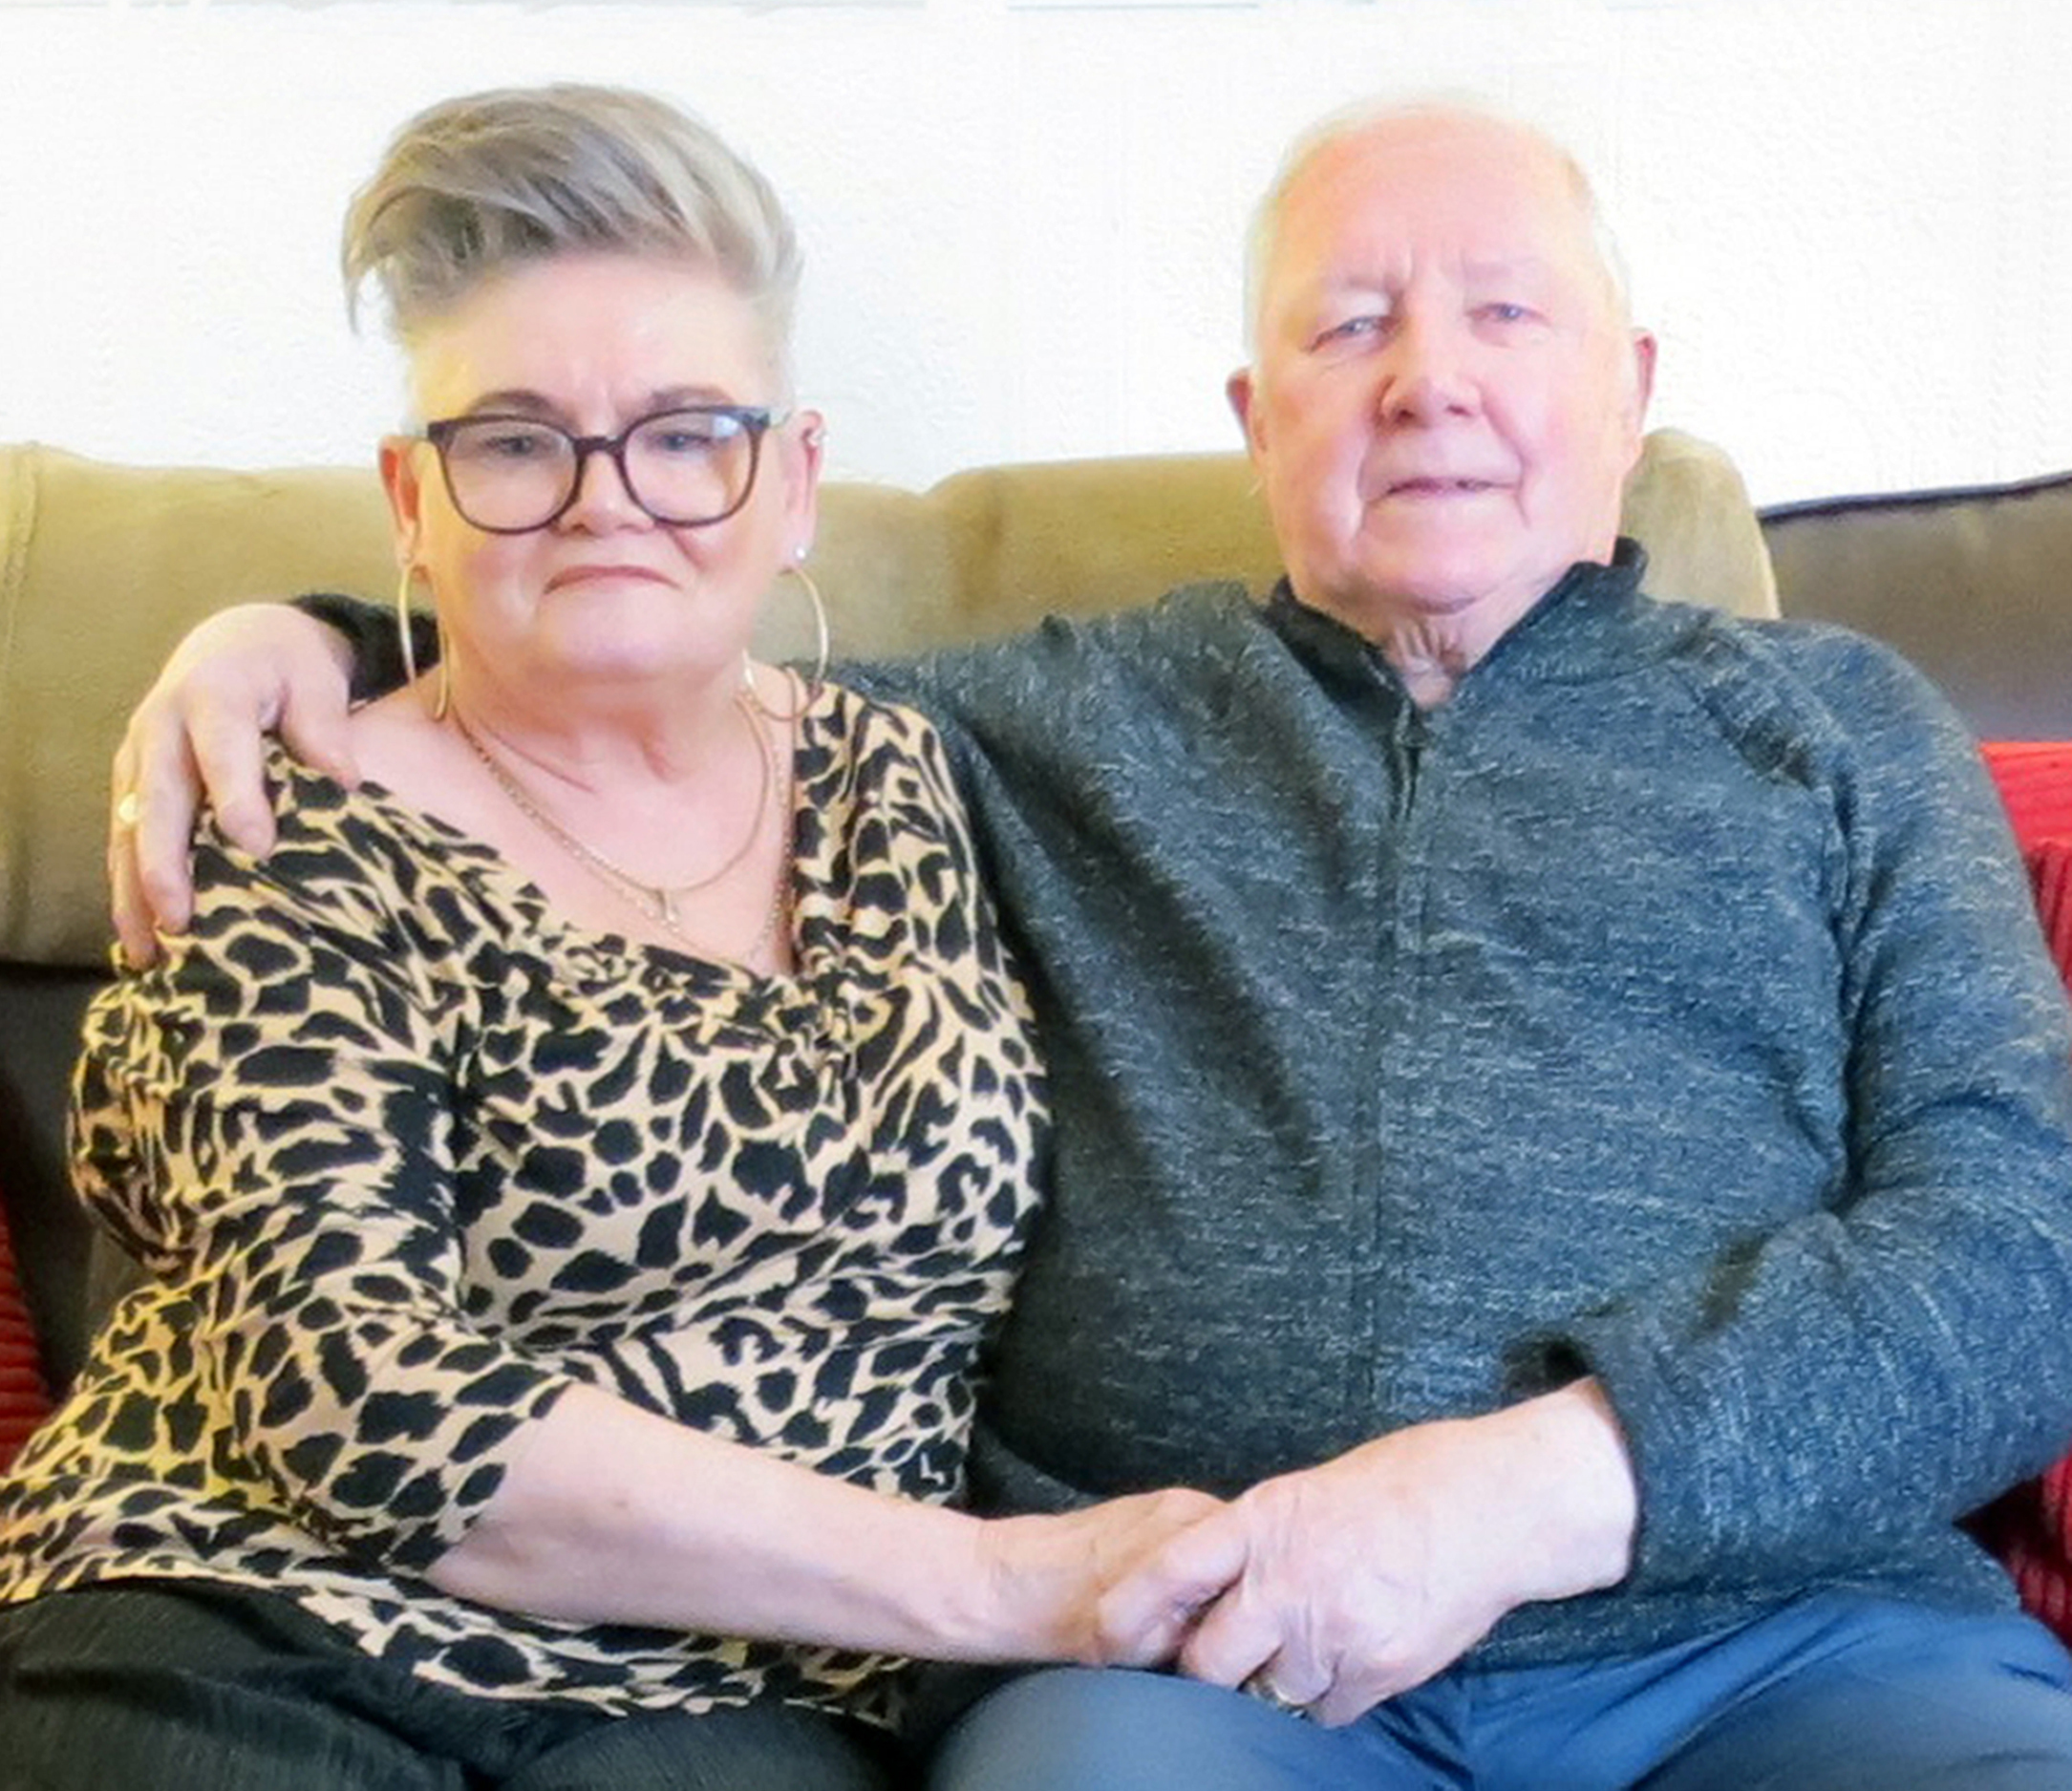 Former Glasgow steel worker issues asbestos call following diagnosis